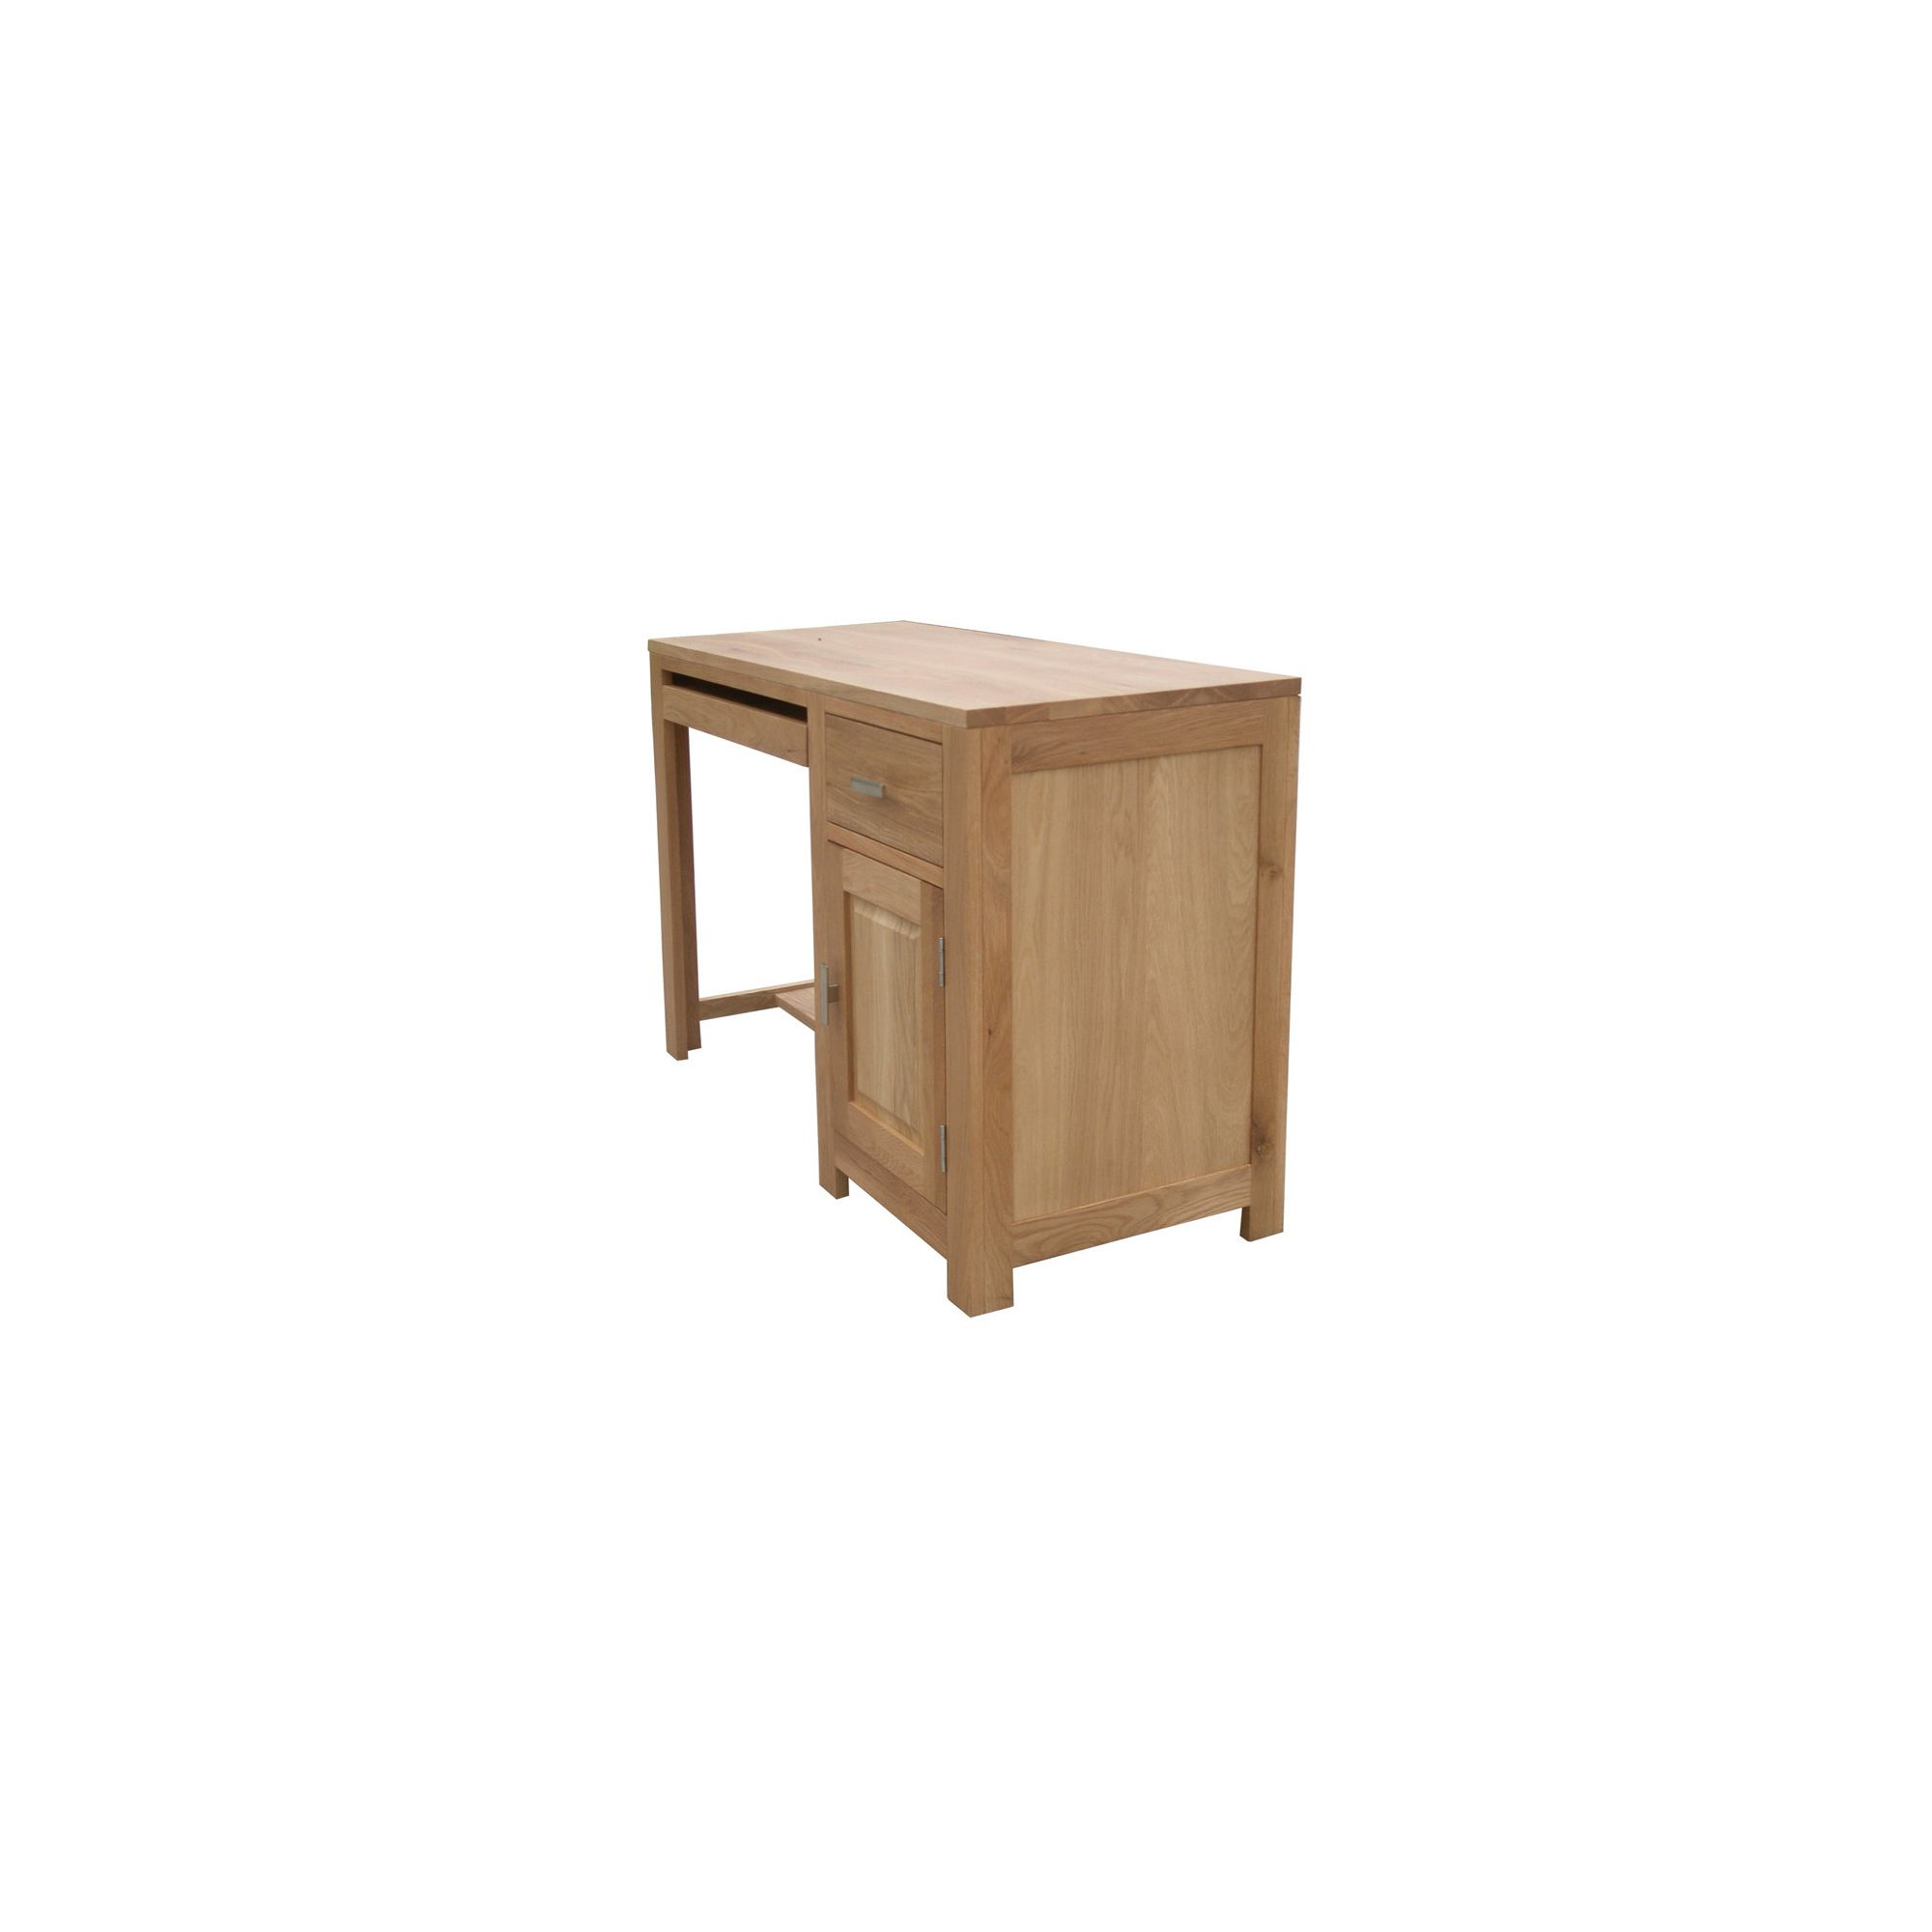 Home Zone Furniture Churchill Oak 2010 Small Computer / Writing Desk in Natural Oak at Tesco Direct